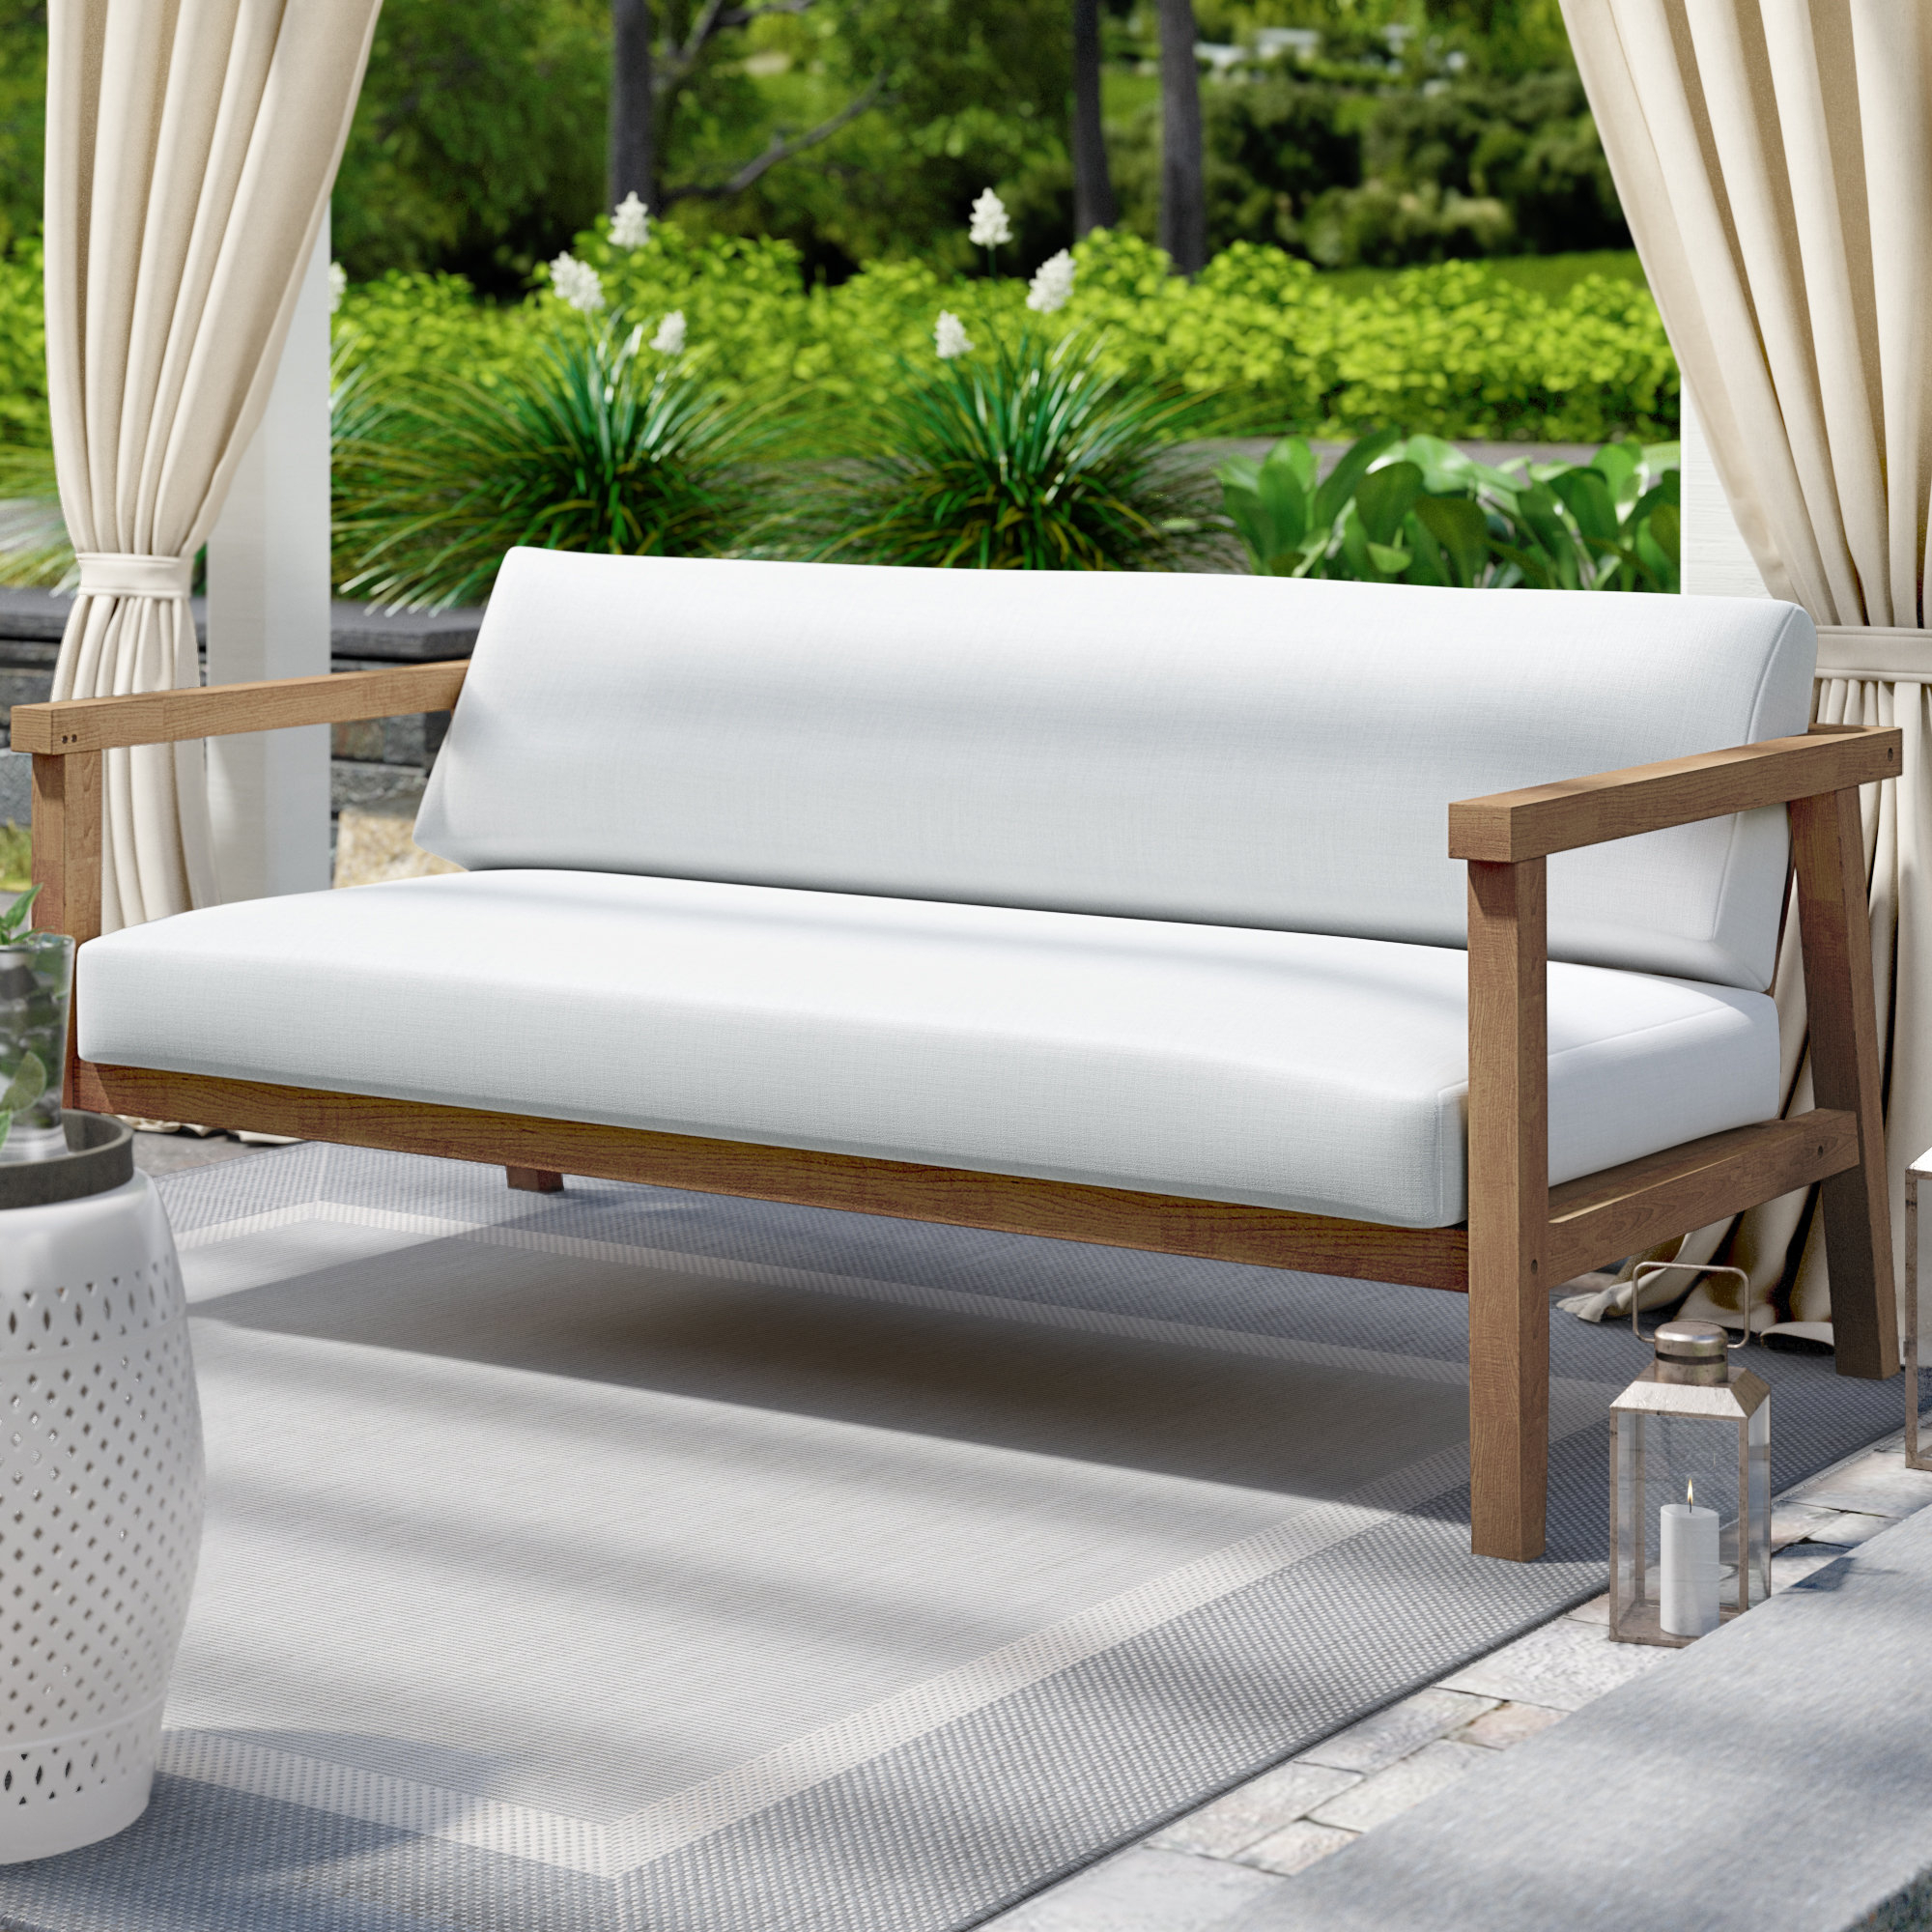 Montford Teak Loveseats With Cushions With Newest Annalese Outdoor Teak Loveseat With Cushions (View 11 of 20)